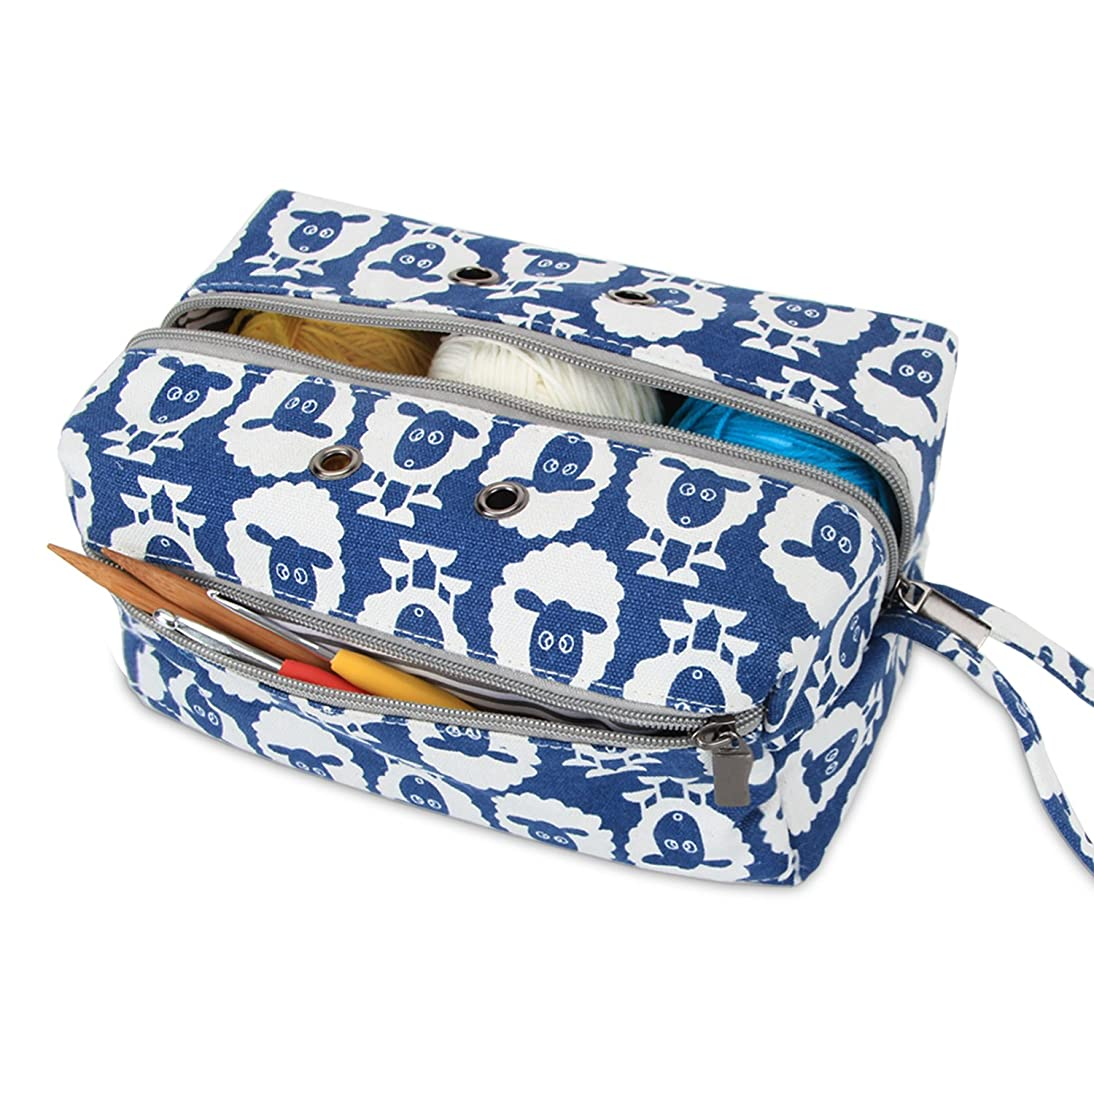 Luxja Small Yarn Storage Bag, Portable Knitting Bag for Yarn Skeins, Crochet Hooks, Knitting Needles (up to 8 Inches) and Other Small Accessories (Small, Sheep)